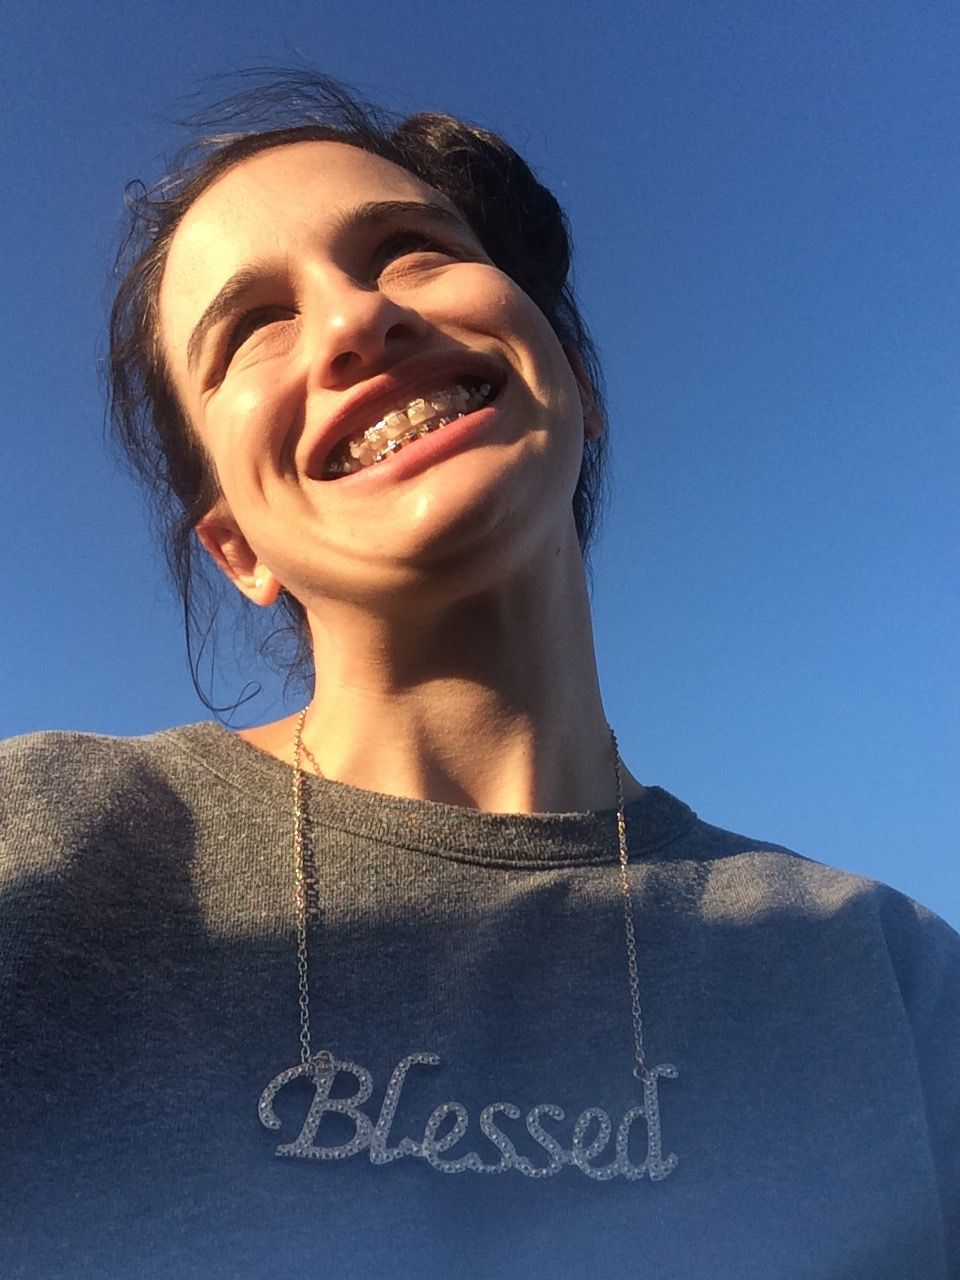 What Getting Braces at 28 Taught Me About Life